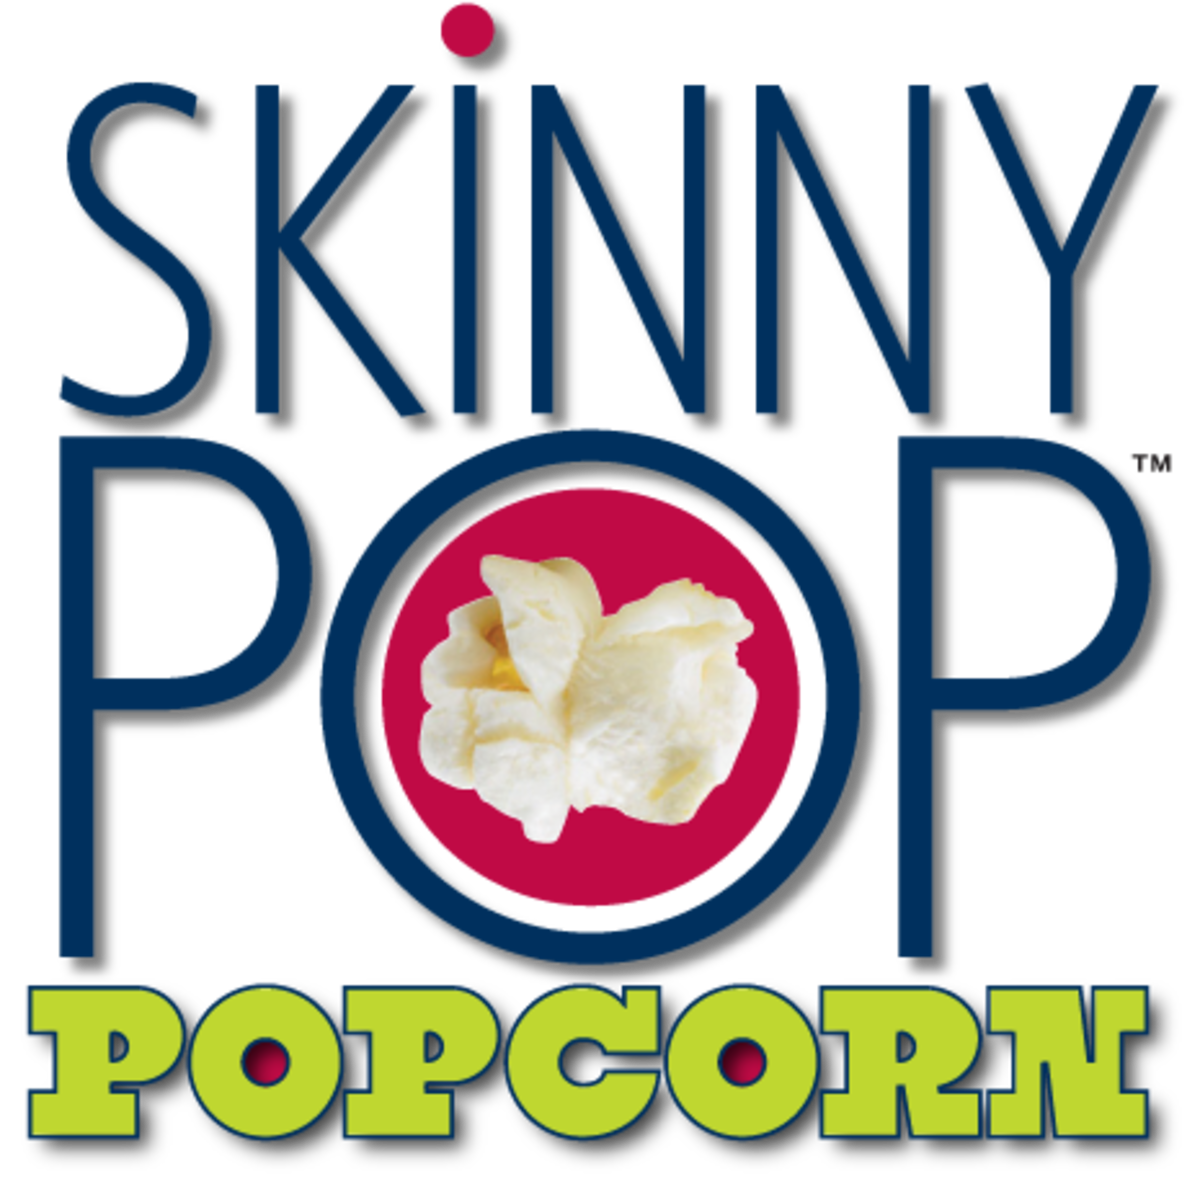 Skinny Pop Popcorn- A Tasty and Healthy Snack Review